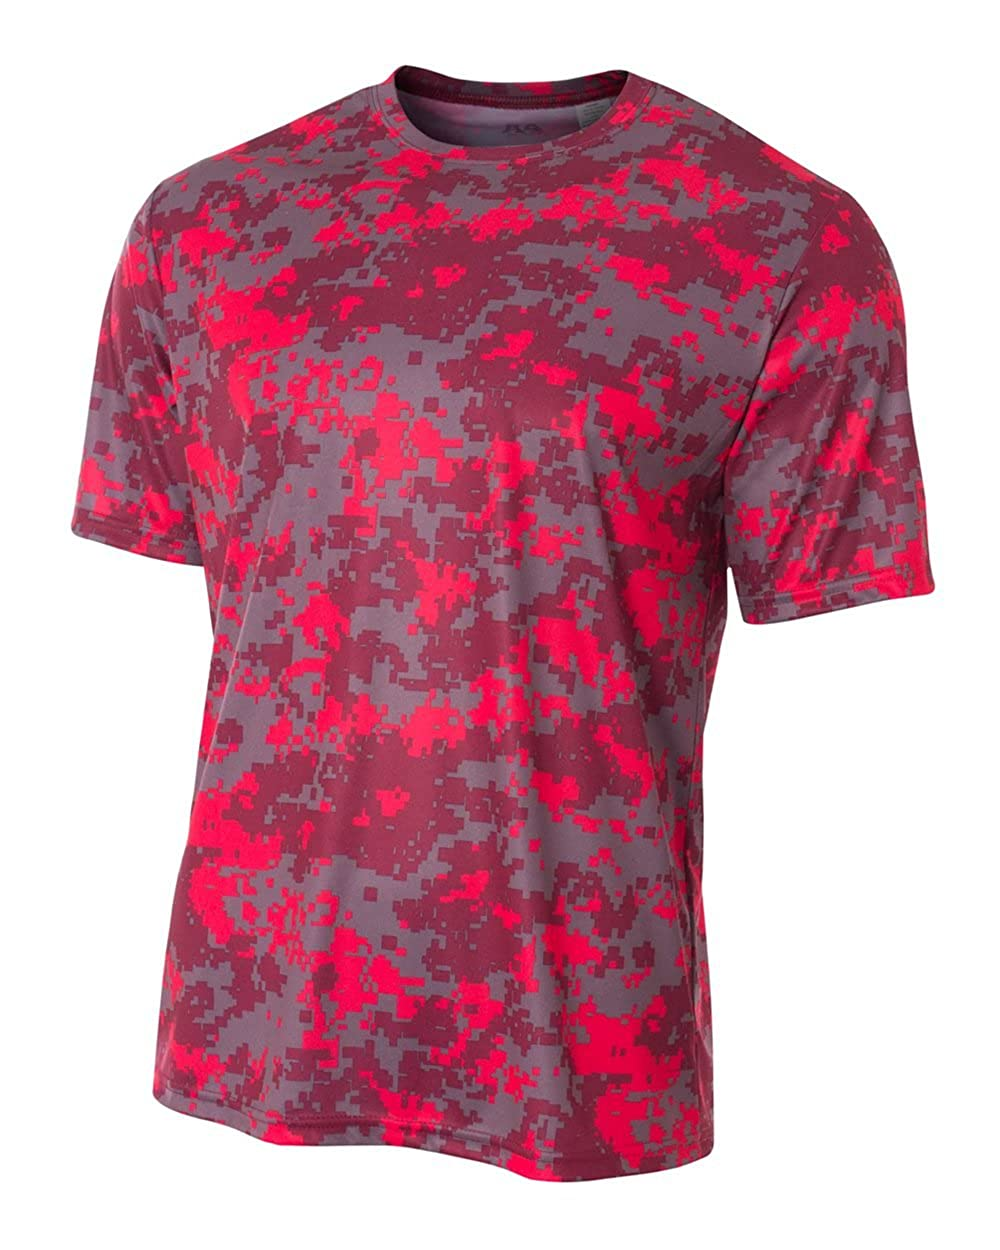 27a4a55a Amazon.com: A4 Men's Camo Performance Tee: Clothing